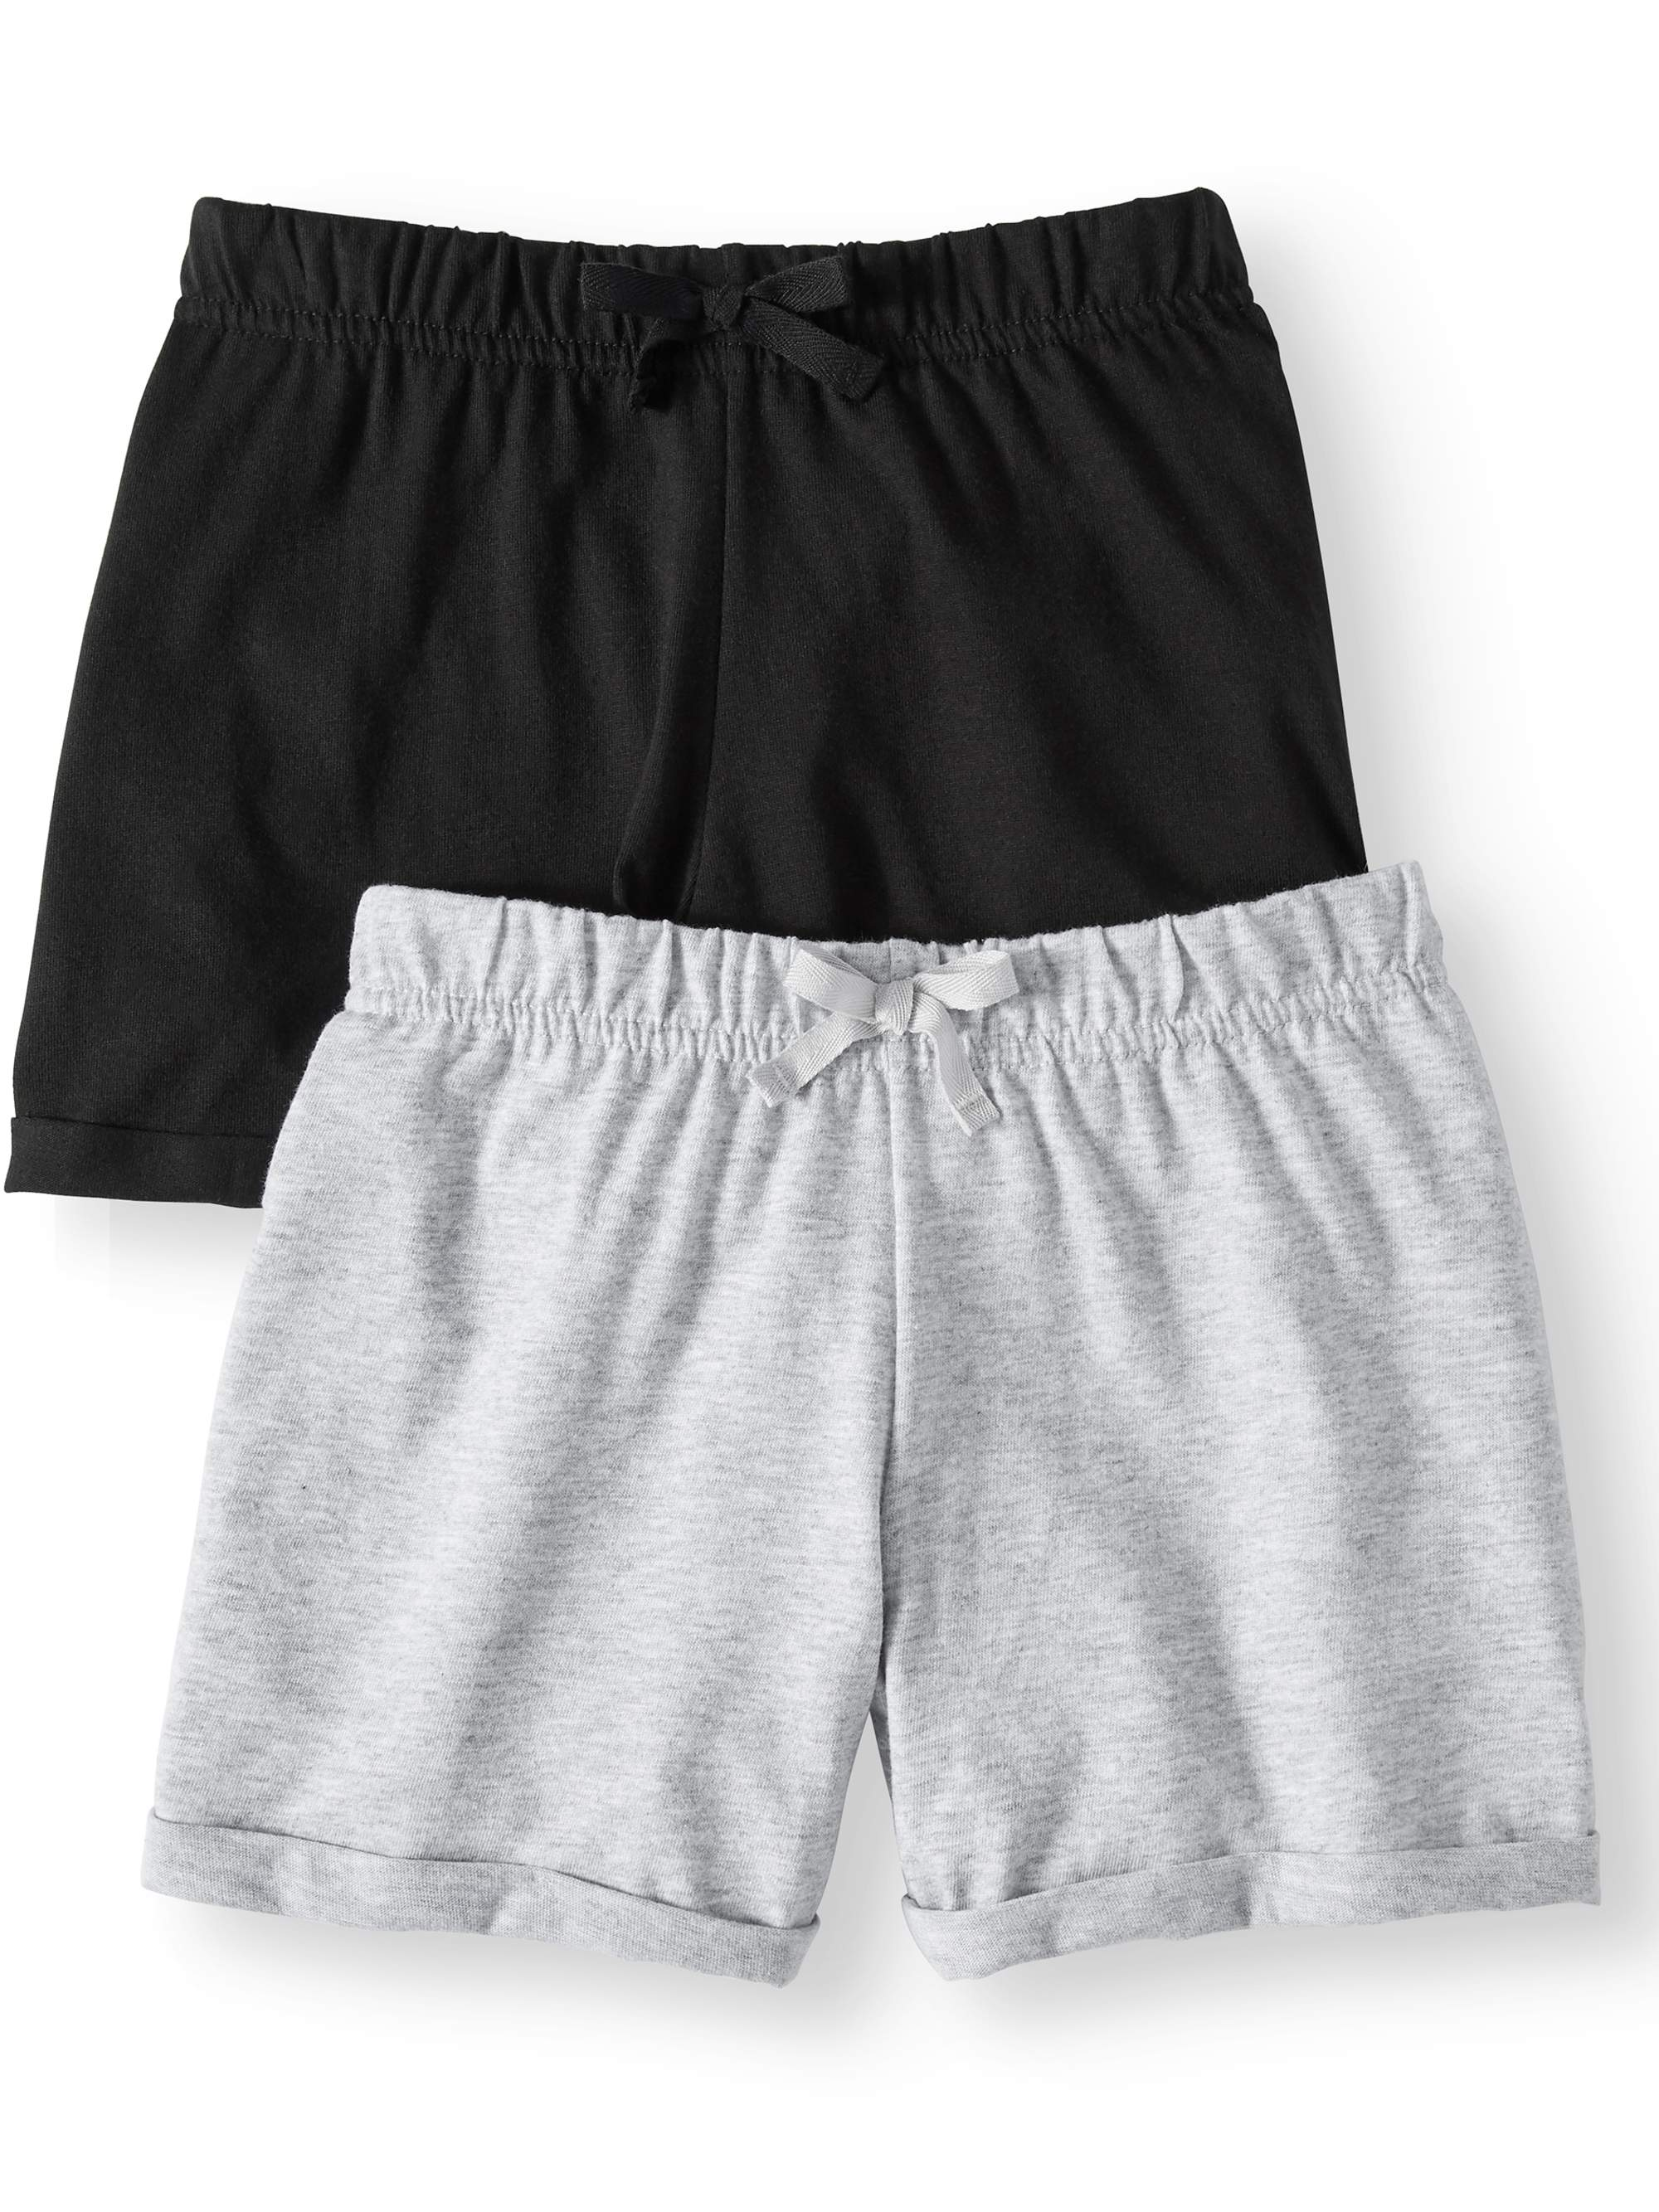 Casual Knit Shorts, 2-pack (Little Girls & Big Girls)